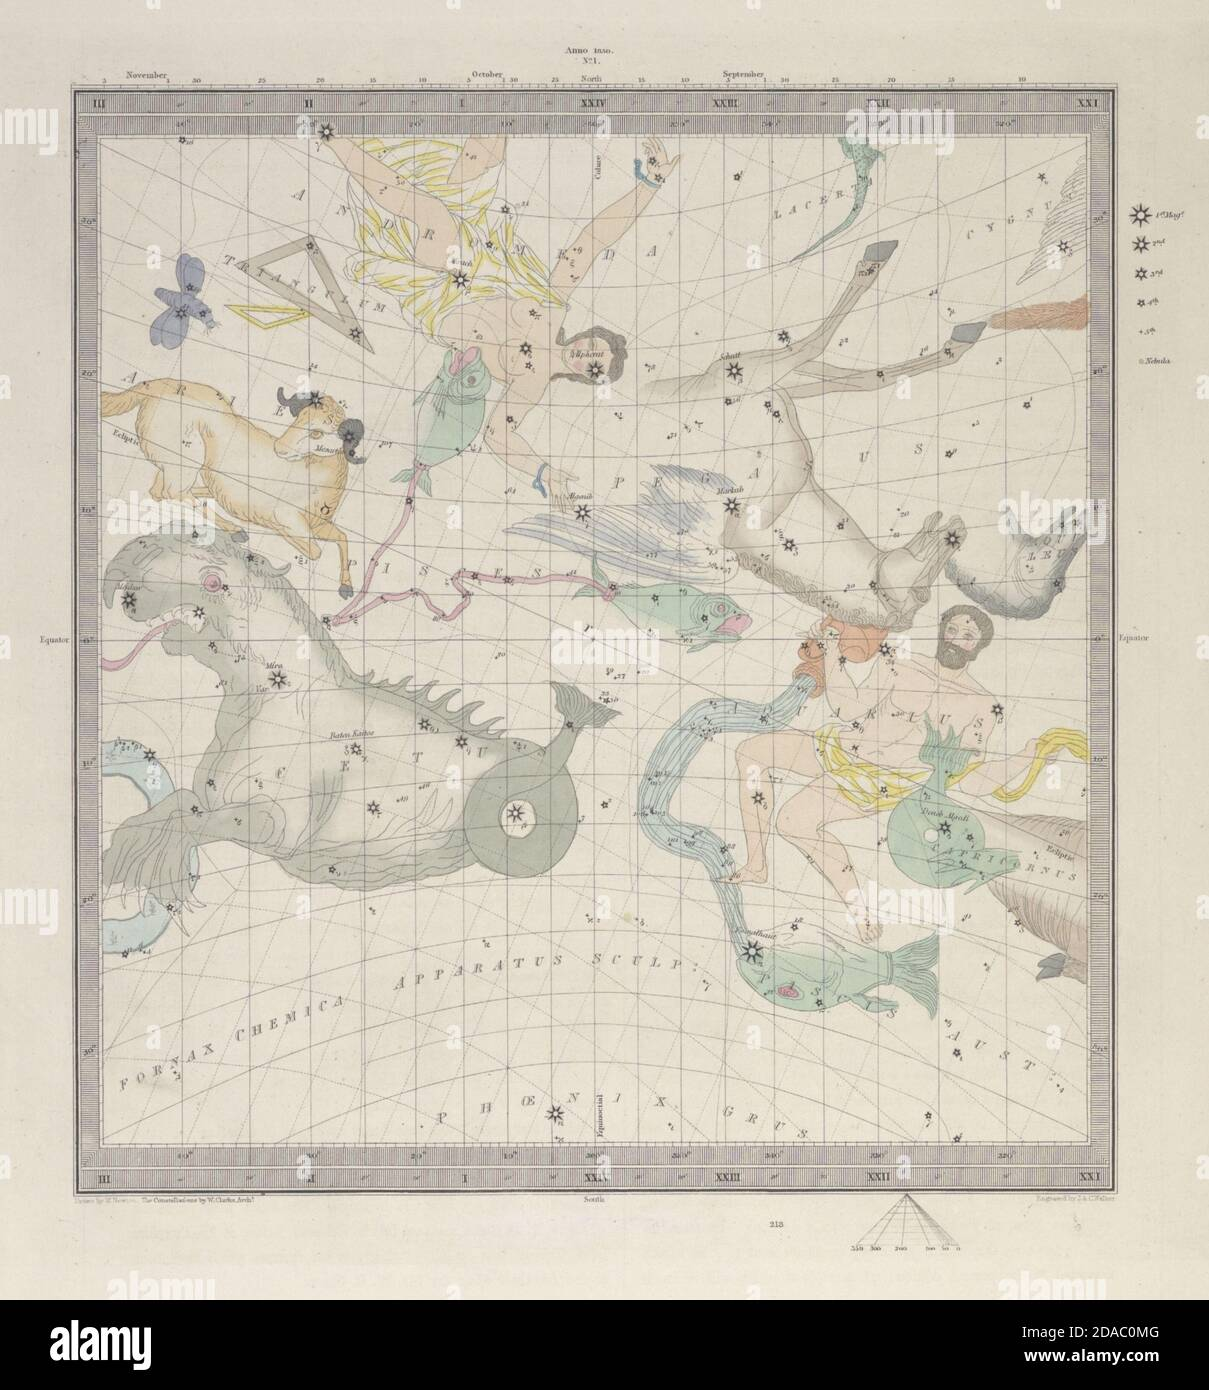 Star Chart Astronomy High Resolution Stock Photography And Images Alamy